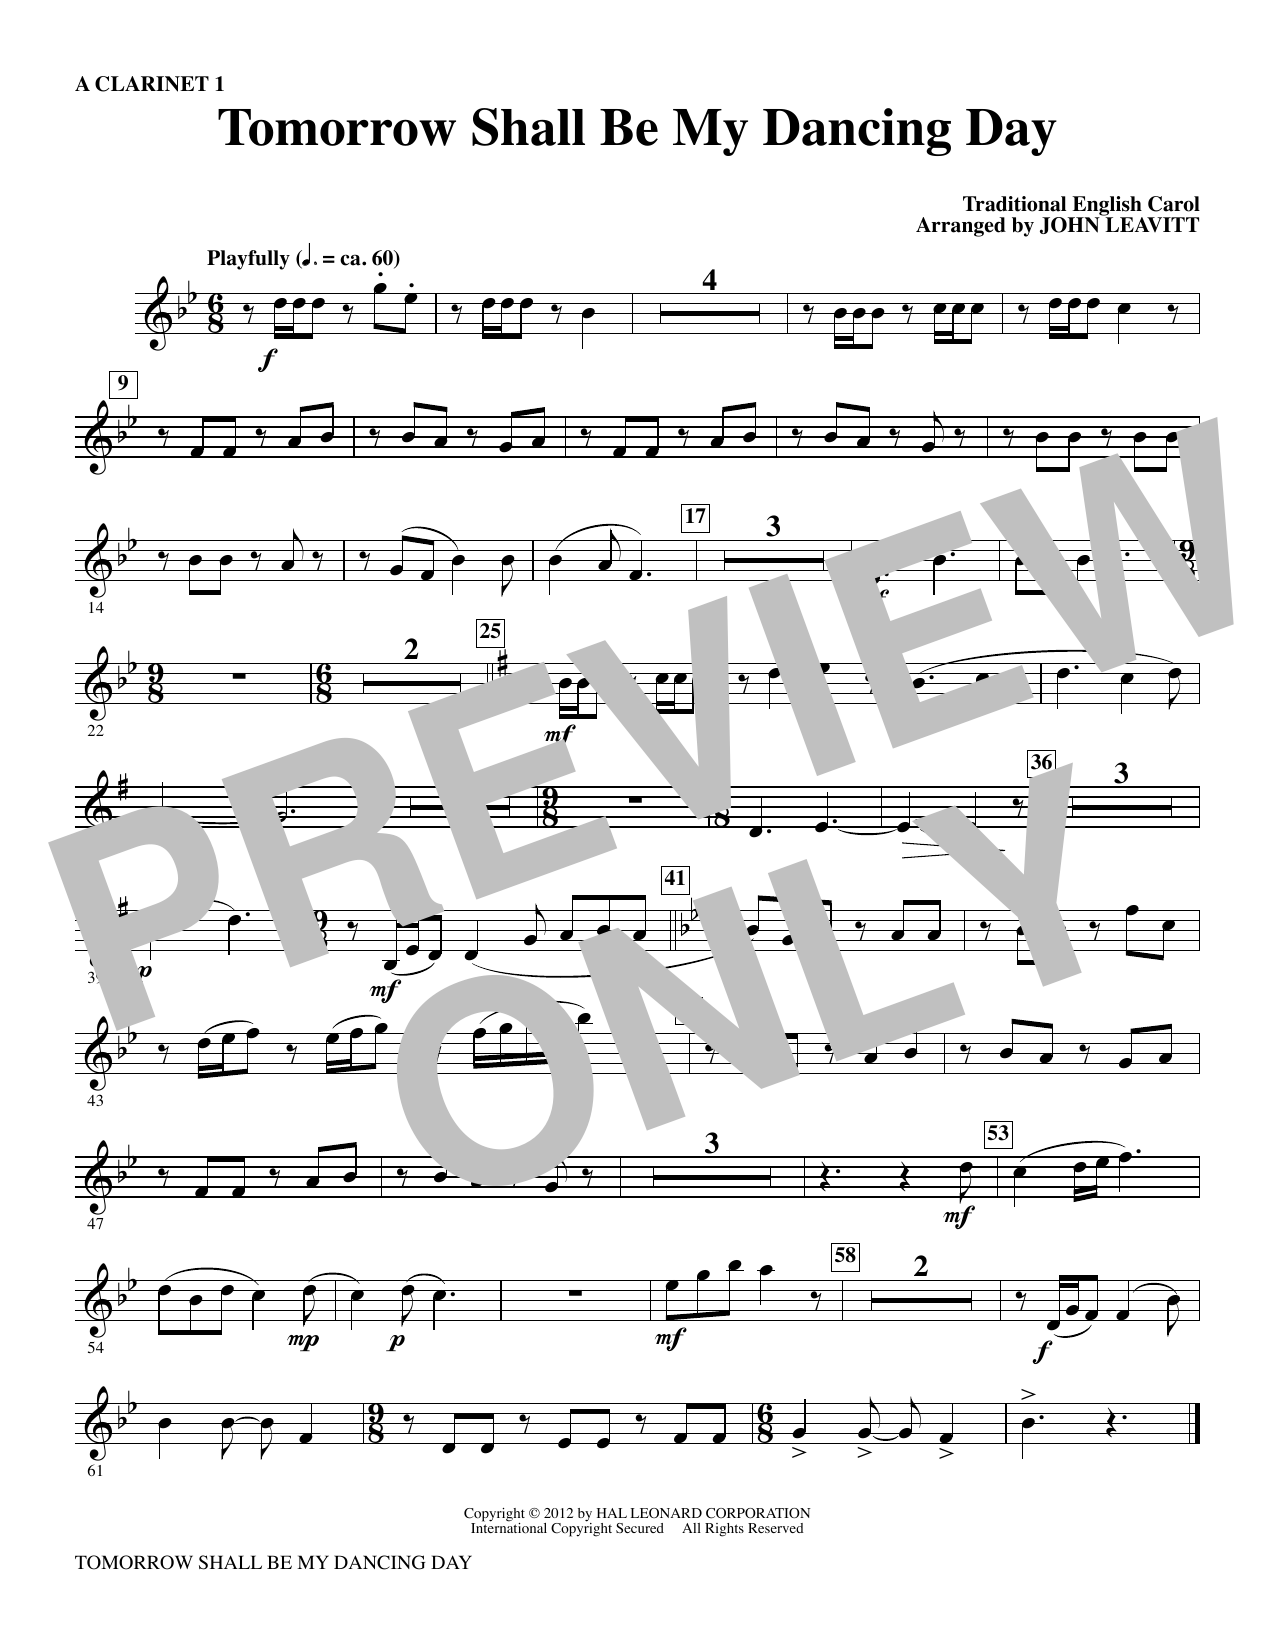 Tomorrow Shall Be My Dancing Day - A Clarinet 1 Sheet Music